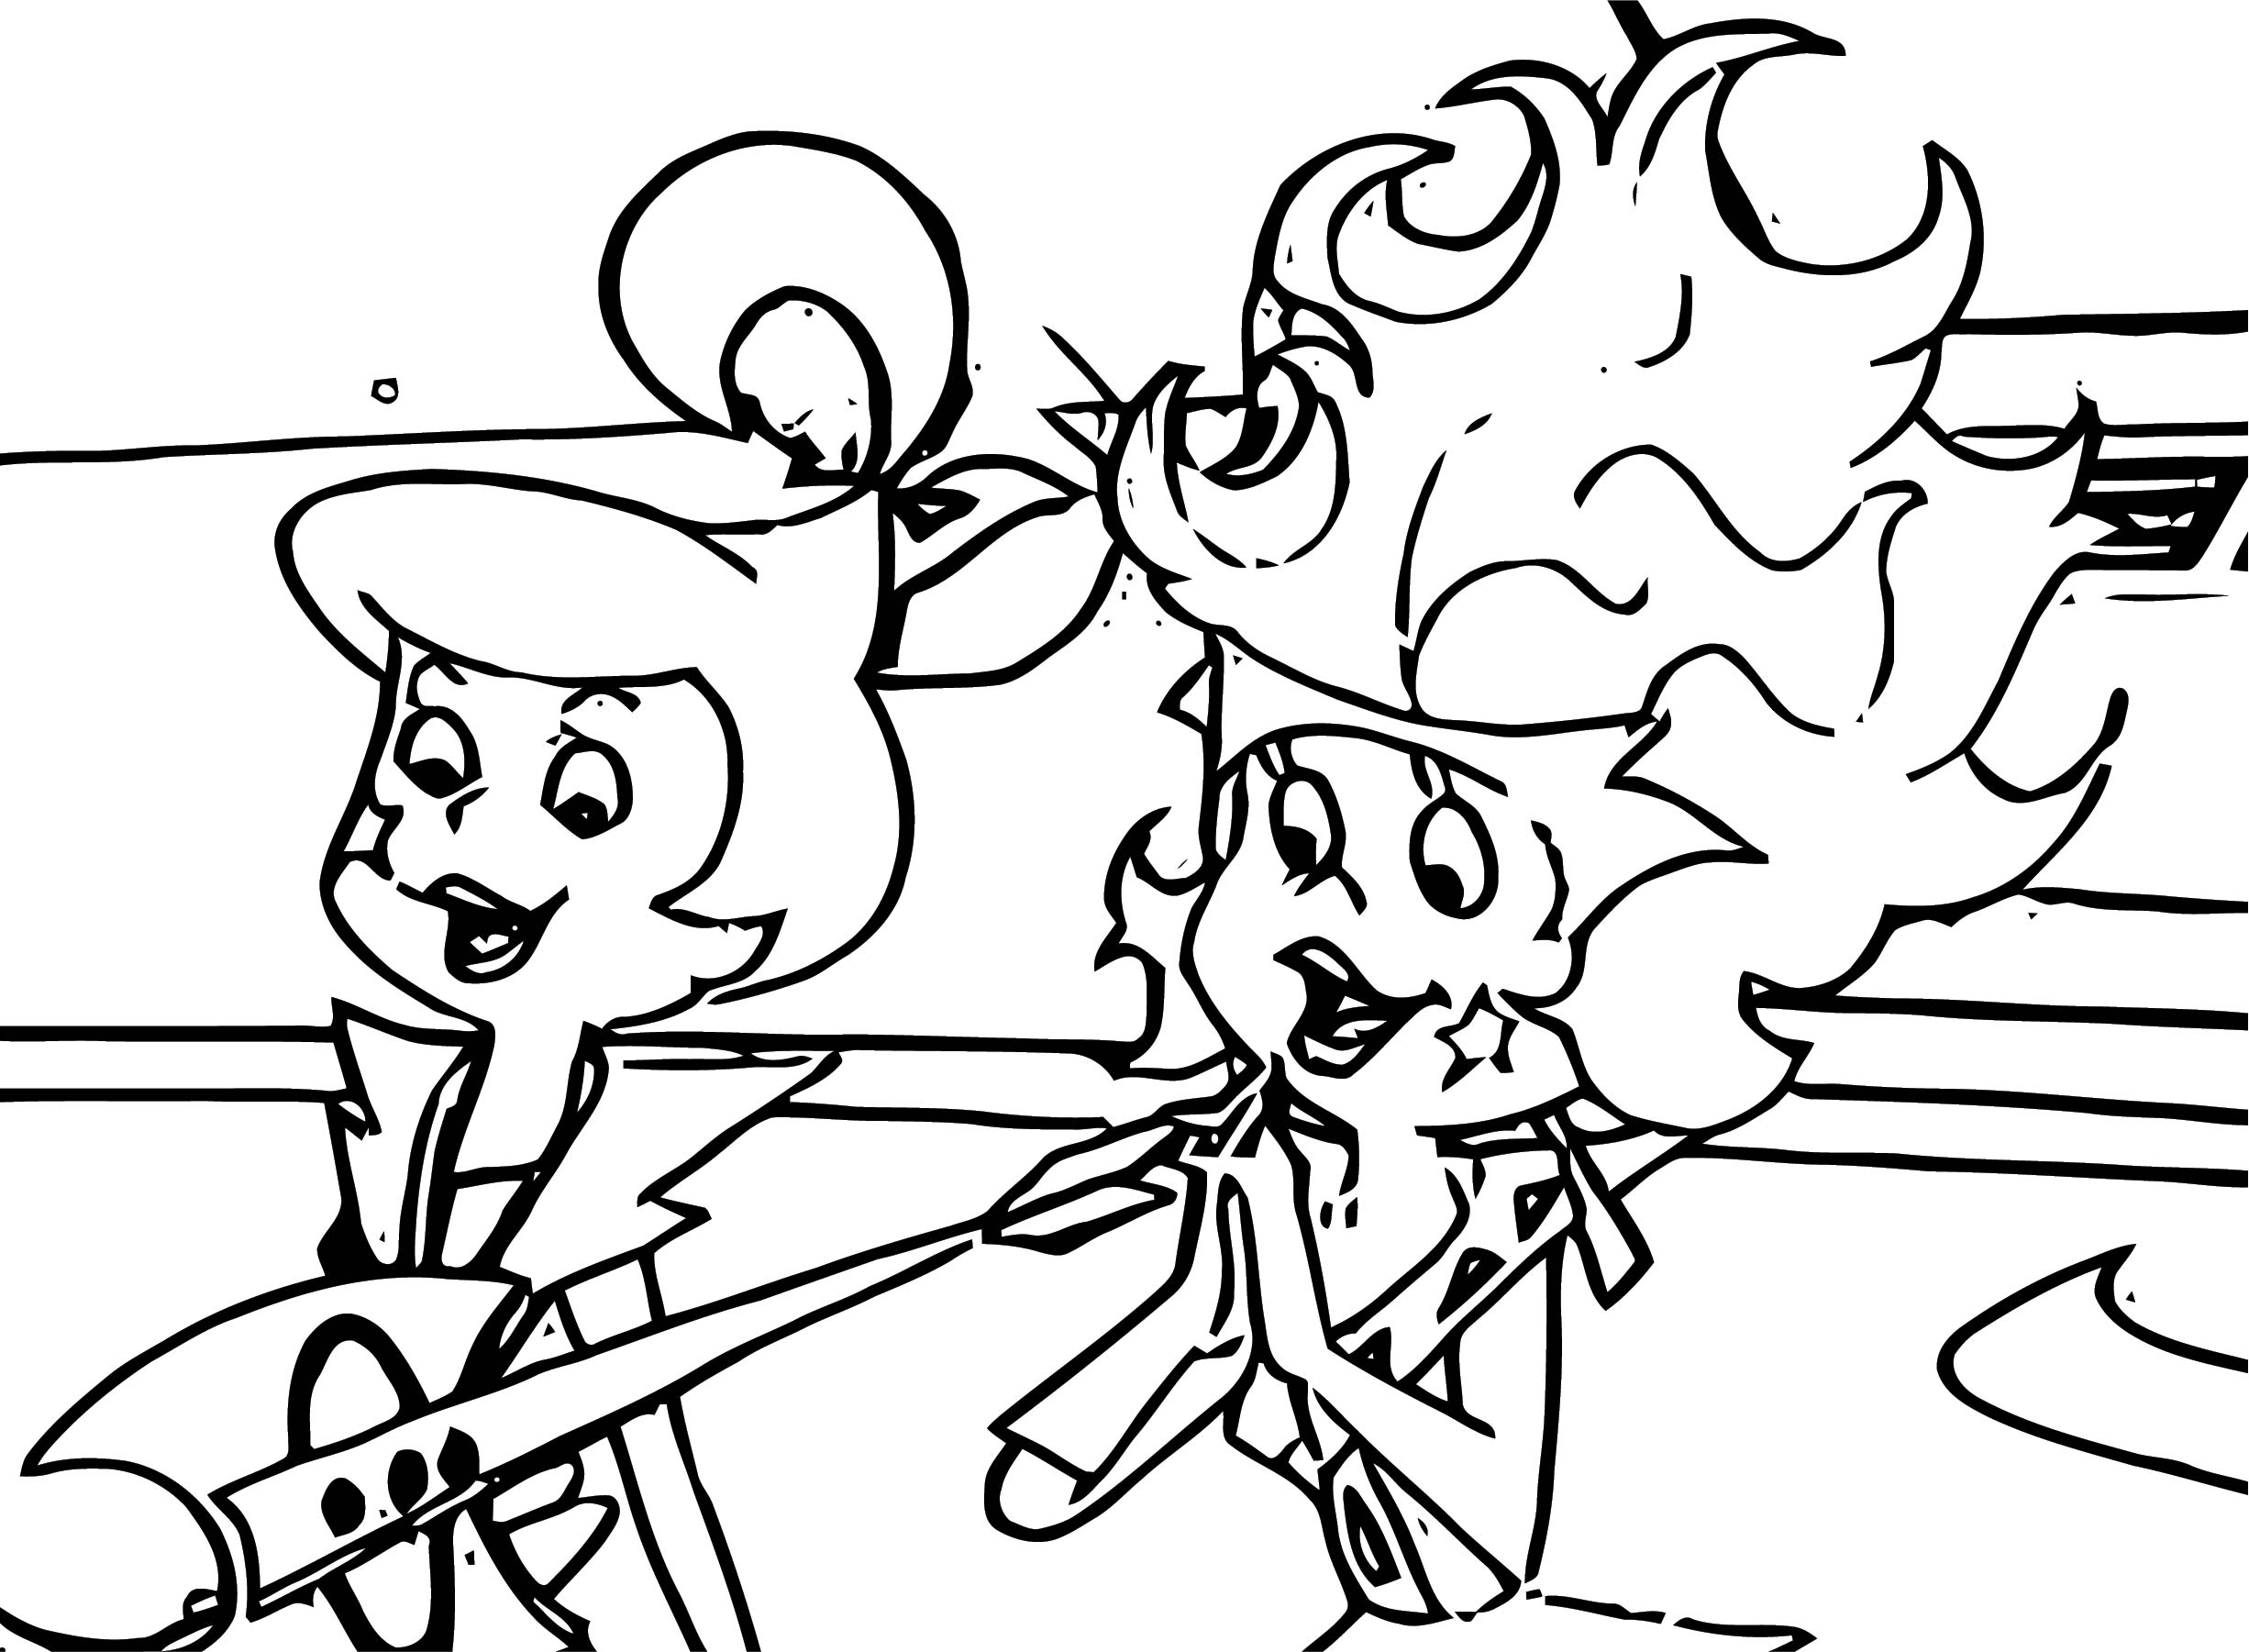 Jetsons Coloring Page 093